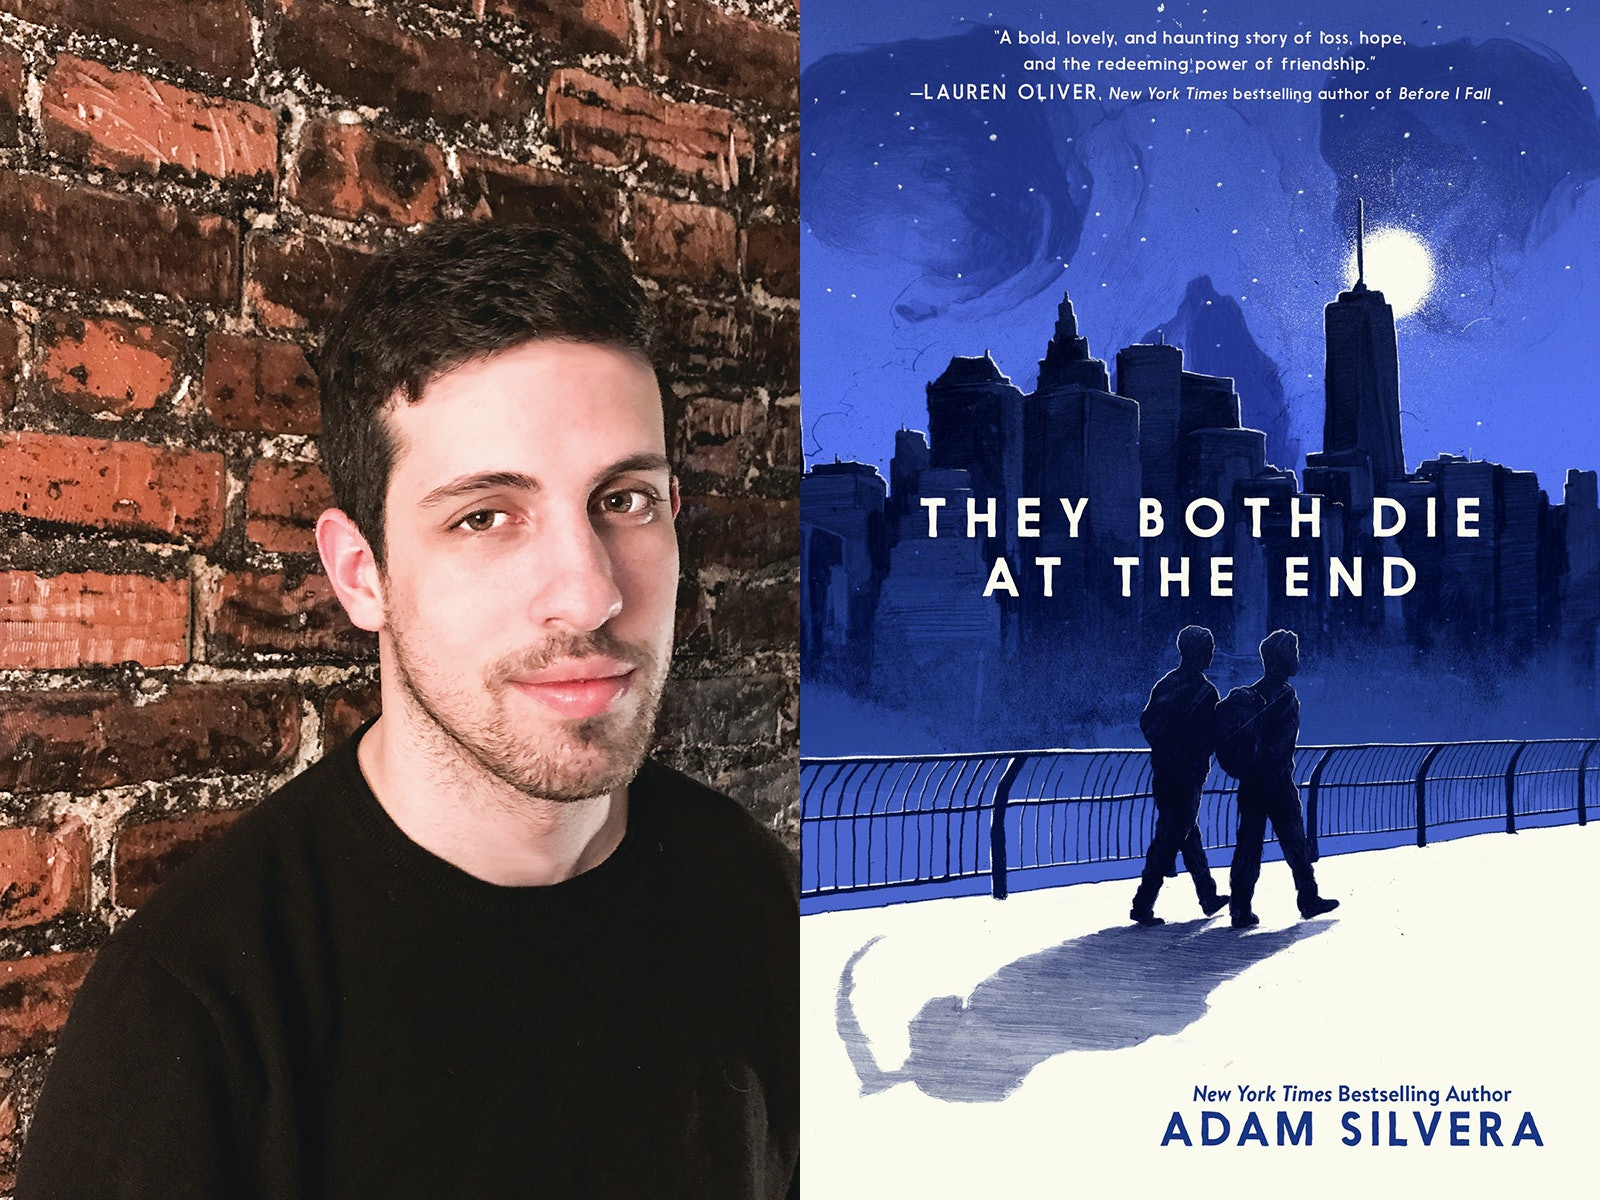 Adam Silvera's 'They Both Die At The End' Imagines A World